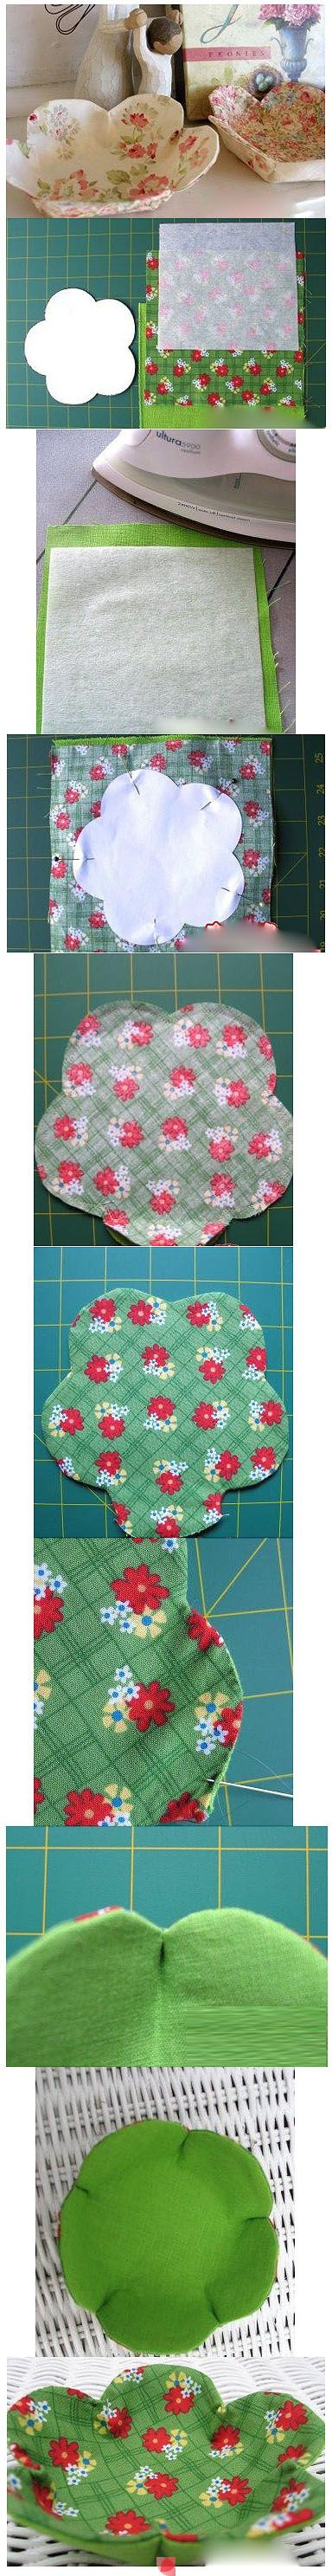 Pretty fabric bowls - for trinkets or gift to friends. Idea - Make patchwork bowls - a good way to use up fabric scraps! :)